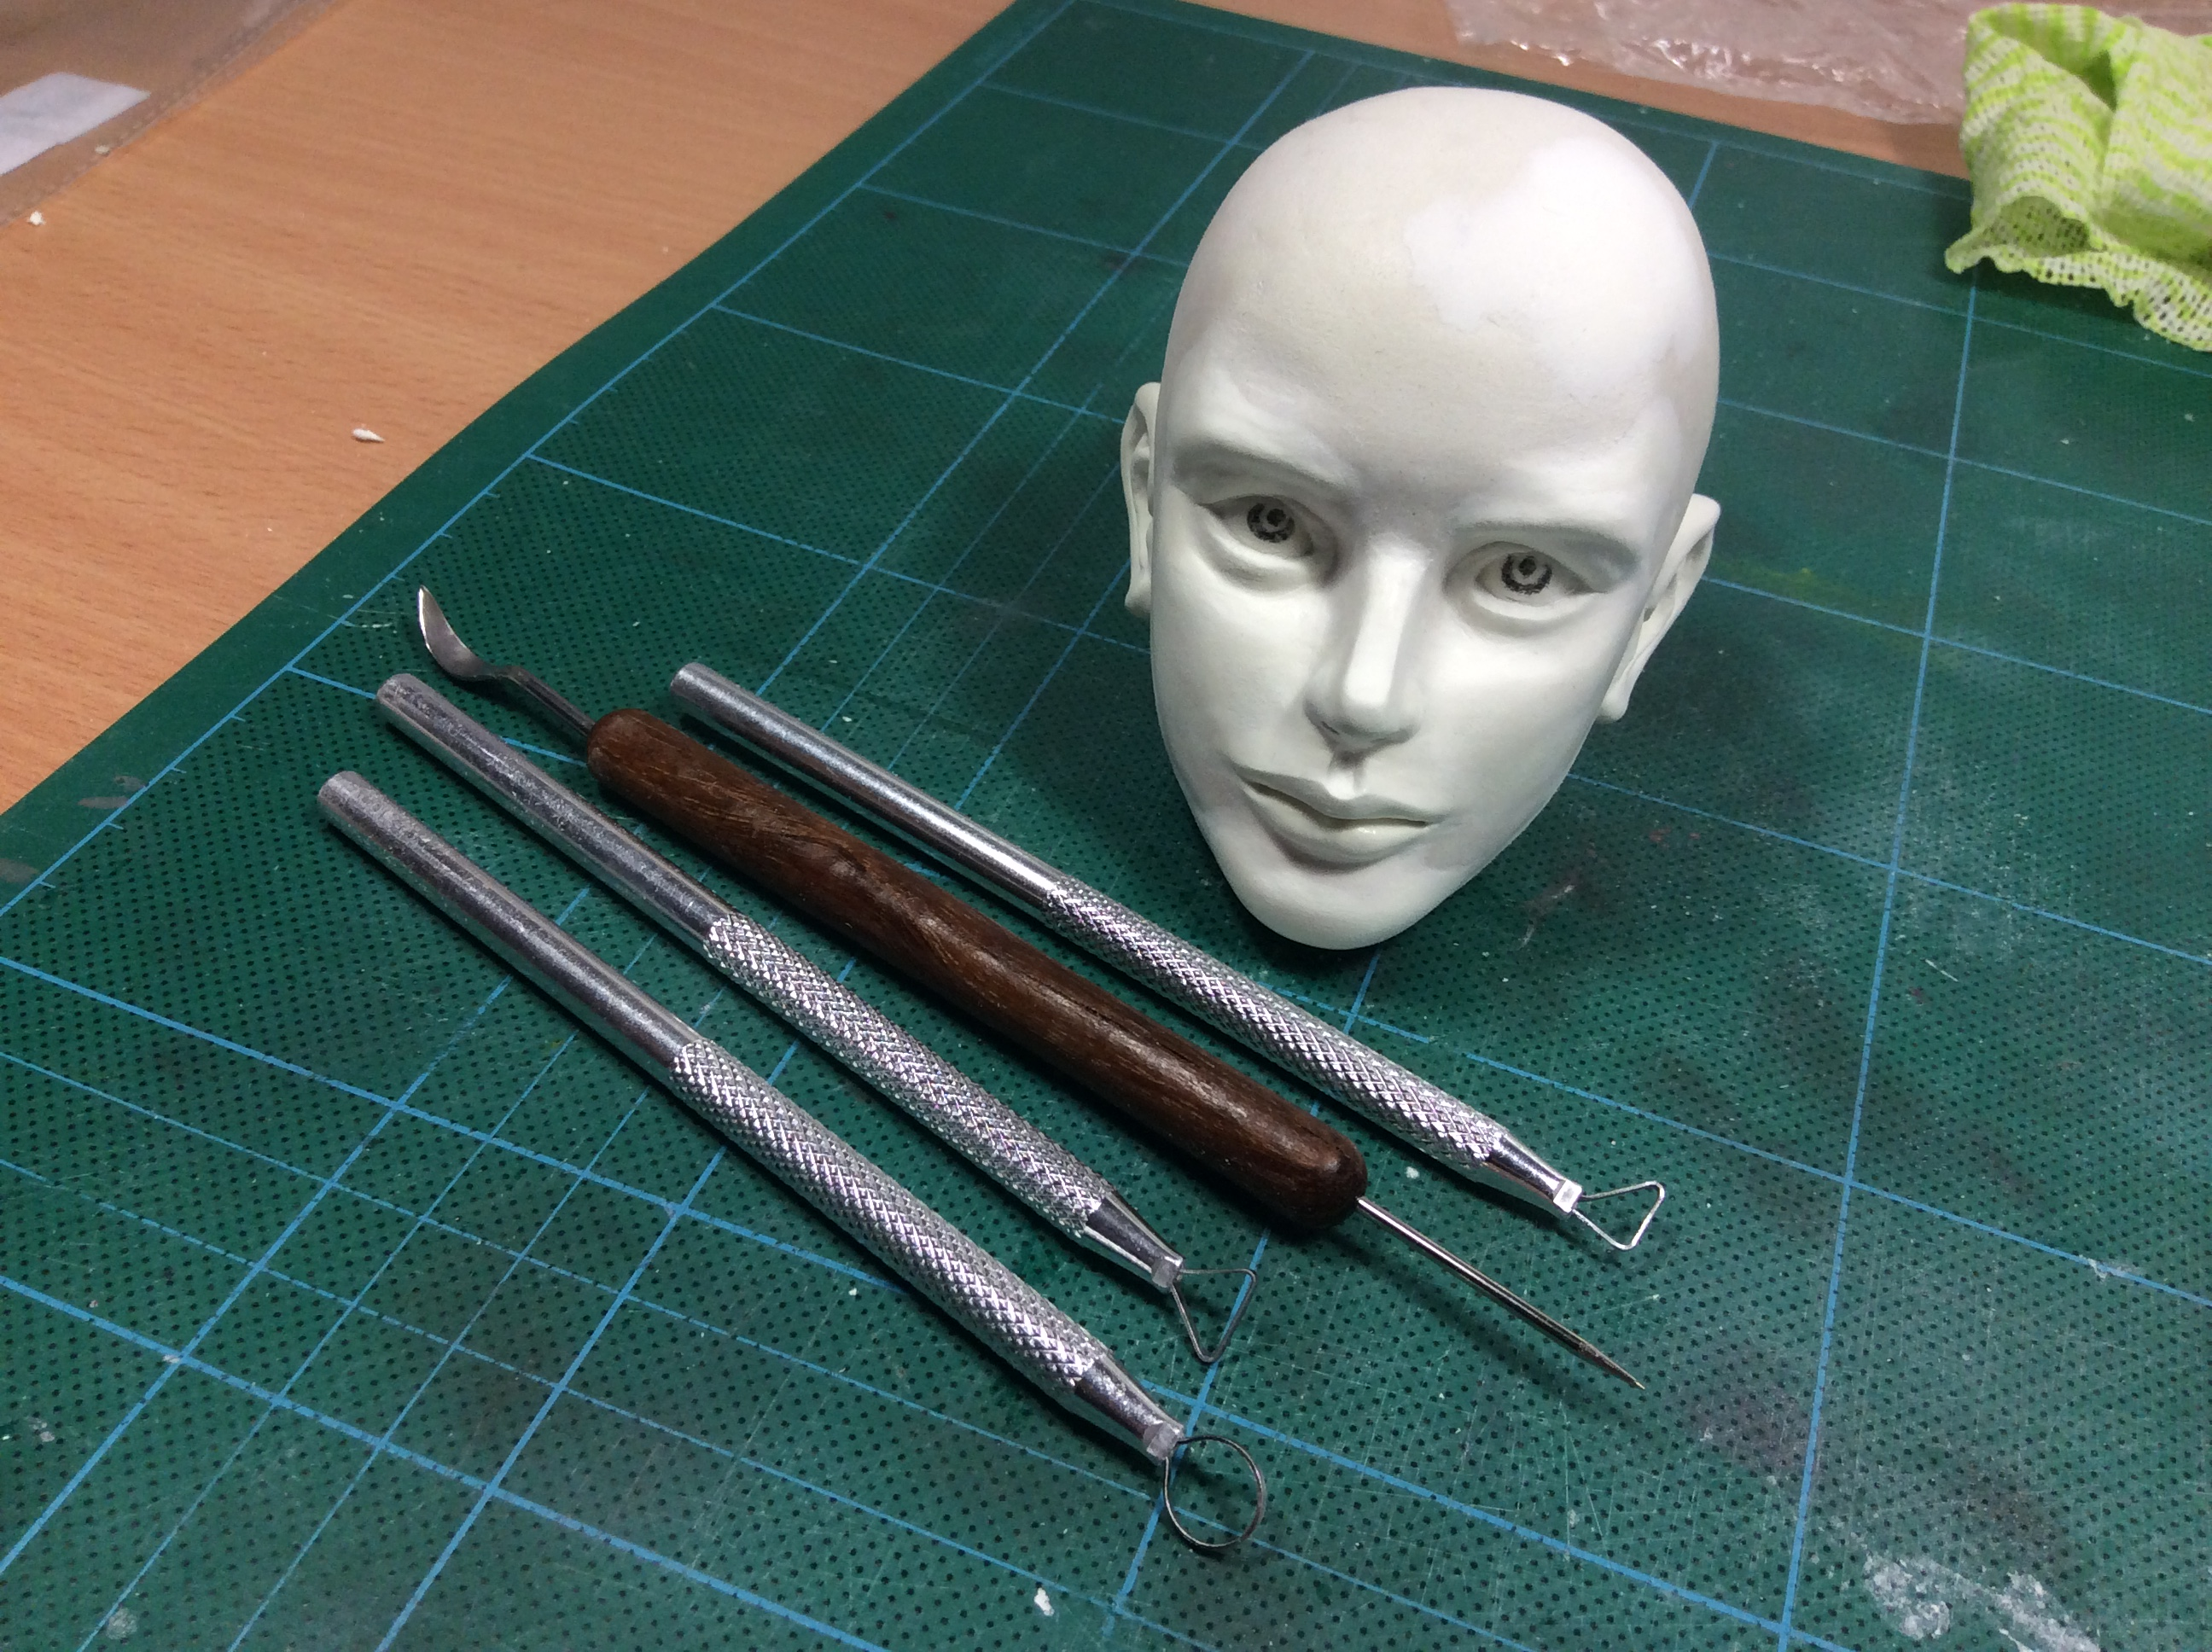 jemse---my-first-doll-head-making-progress-diary-part-4_32436991835_o